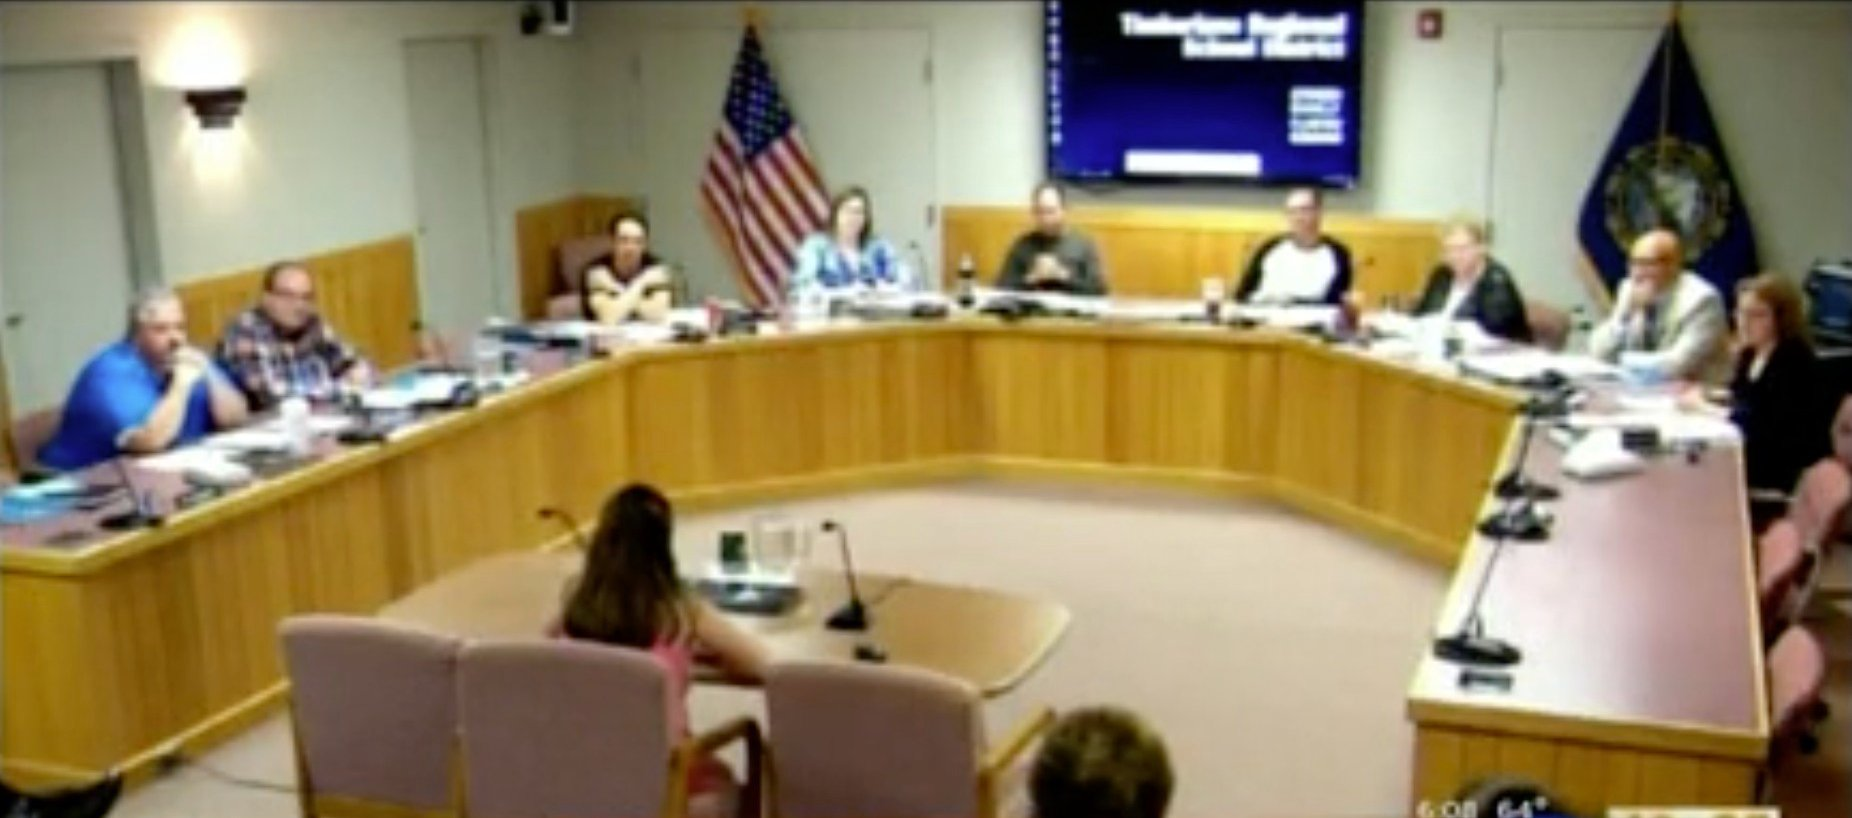 5th grader asked school board to stop bullying